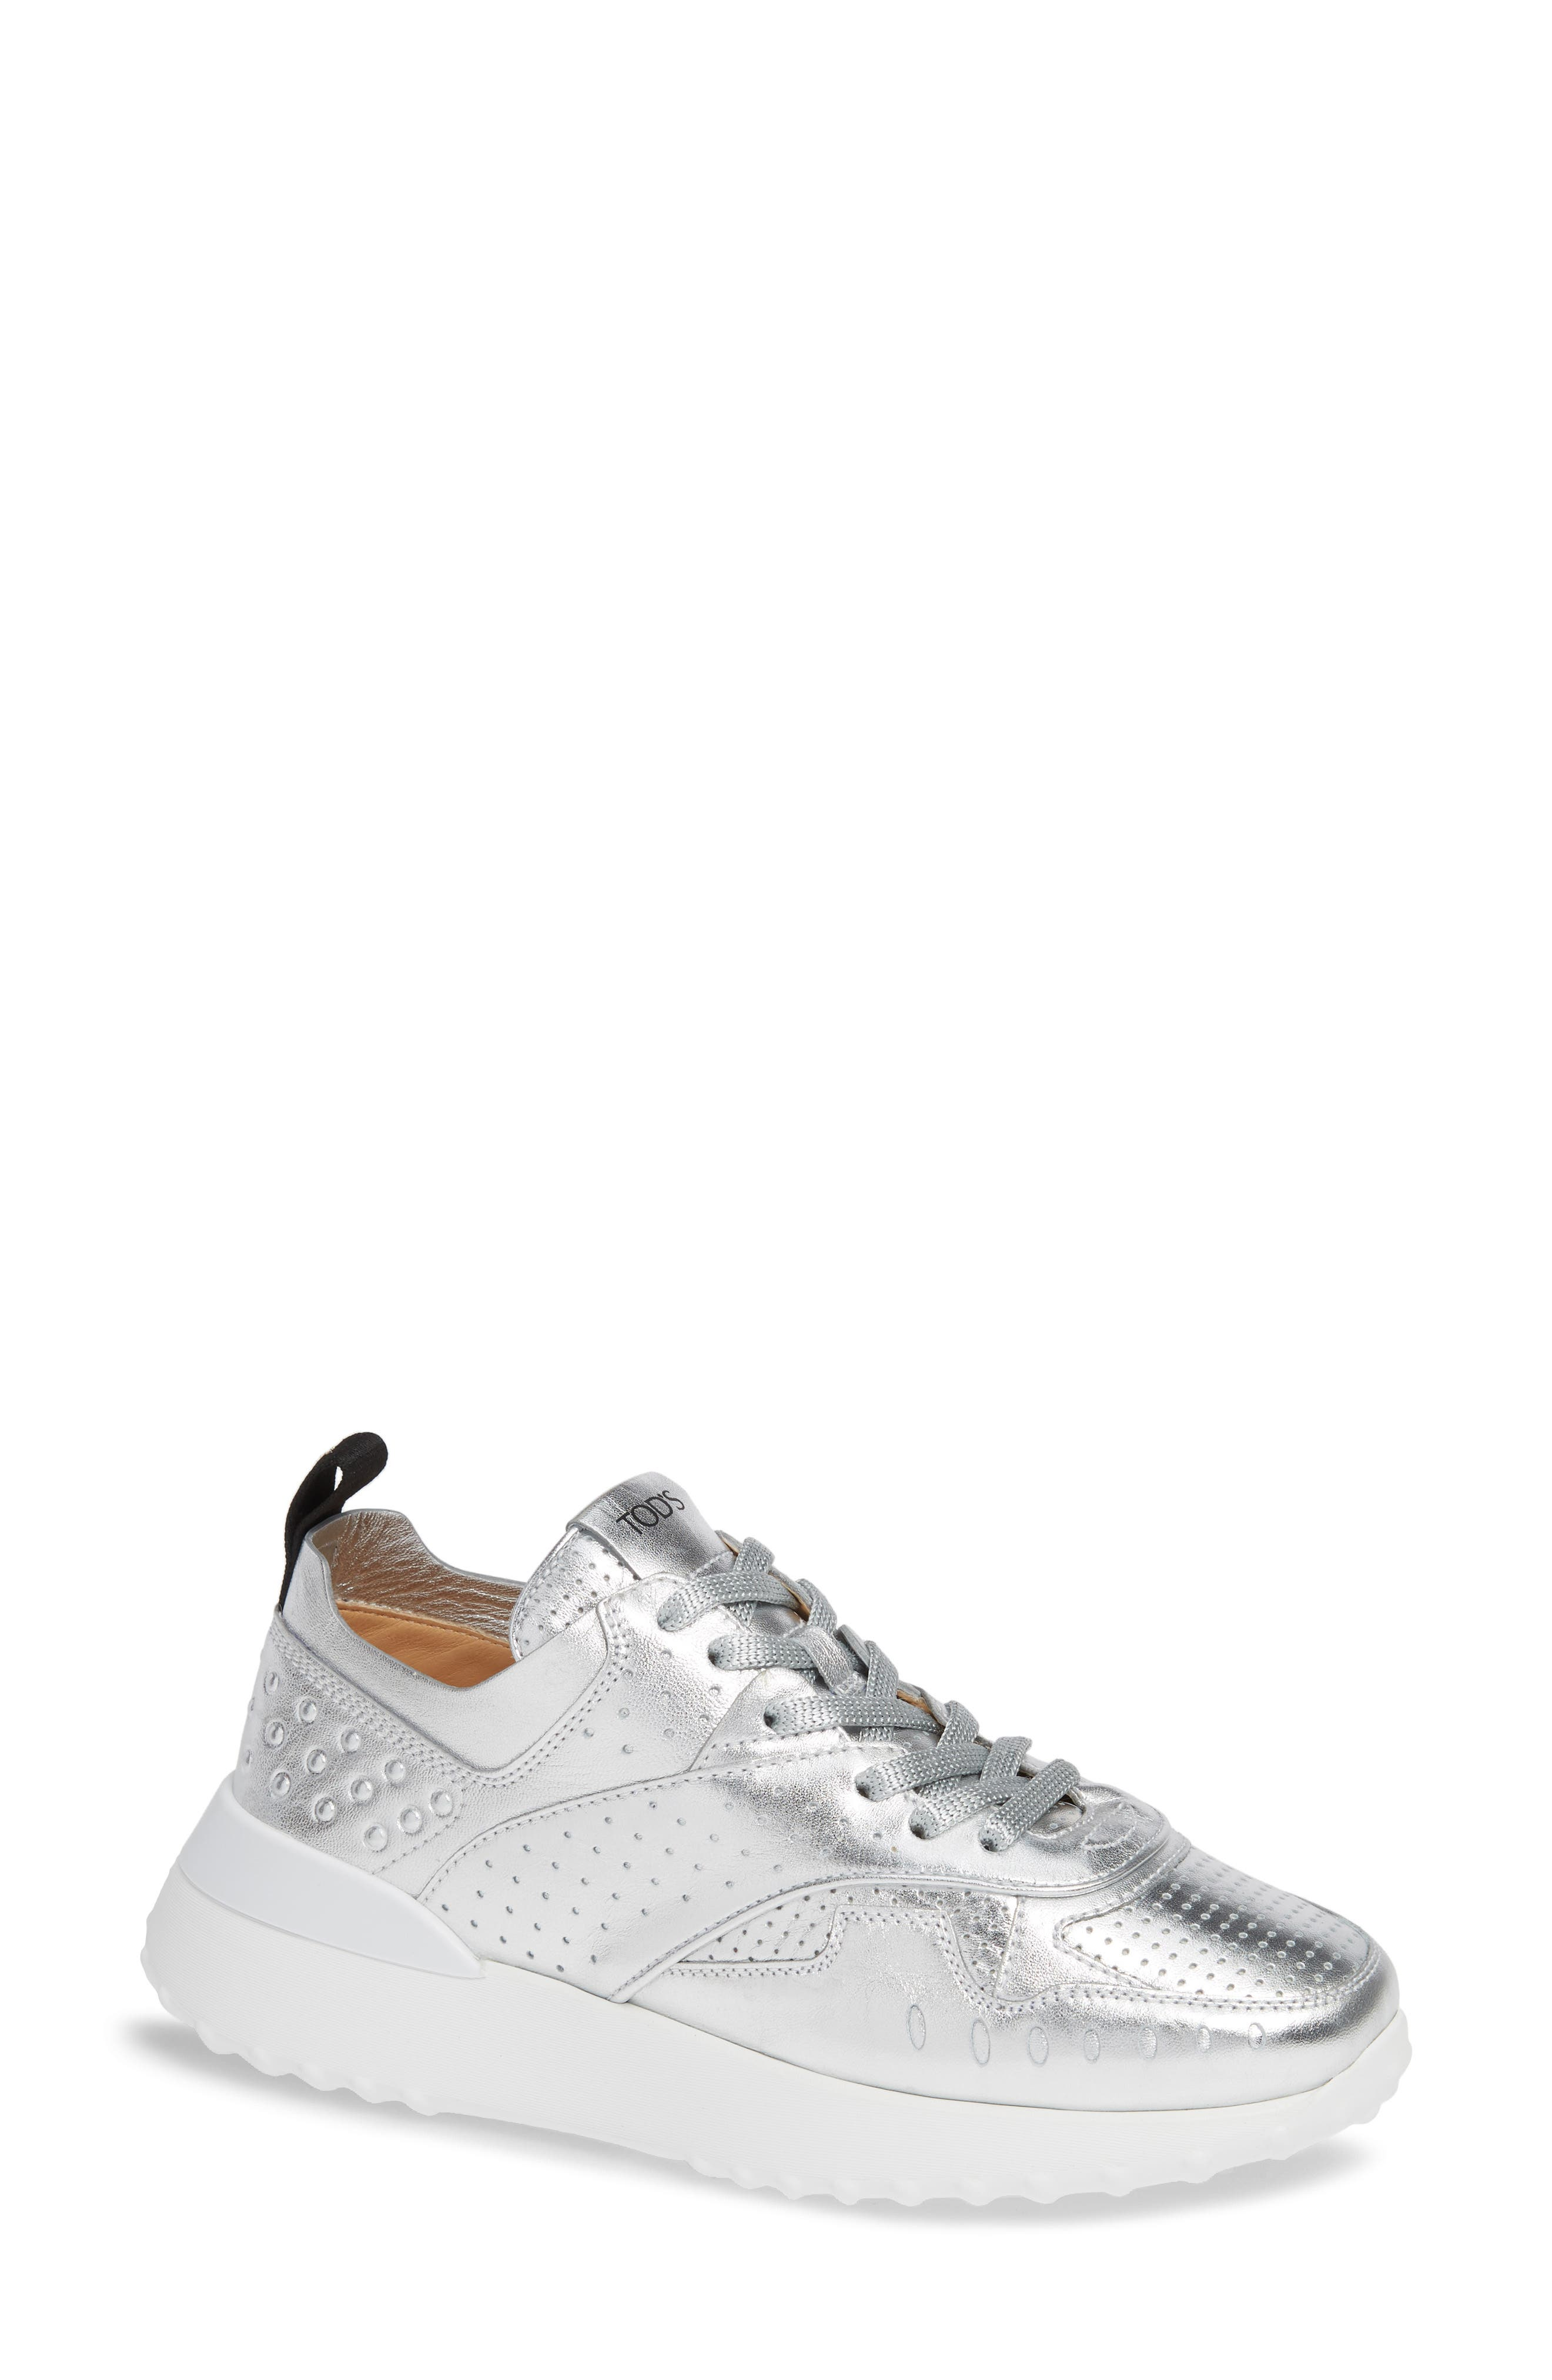 d4ae4598316 Women s Tod s Sneakers   Running Shoes